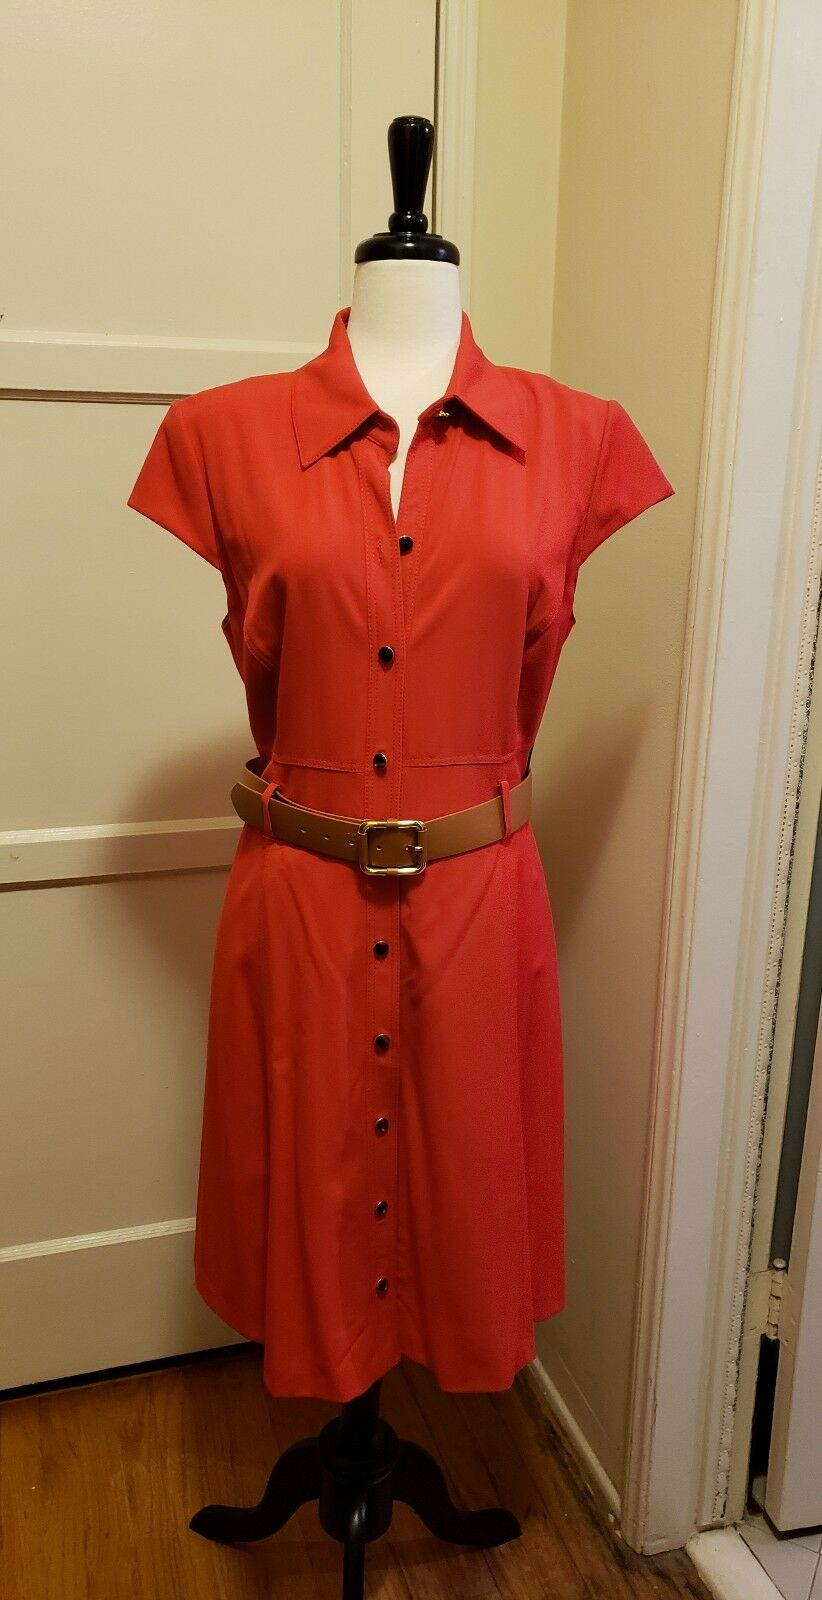 Tahari Poppy Red Retro A-Line Belted Tiger Eye Button Dress  - 14P 14 Petite